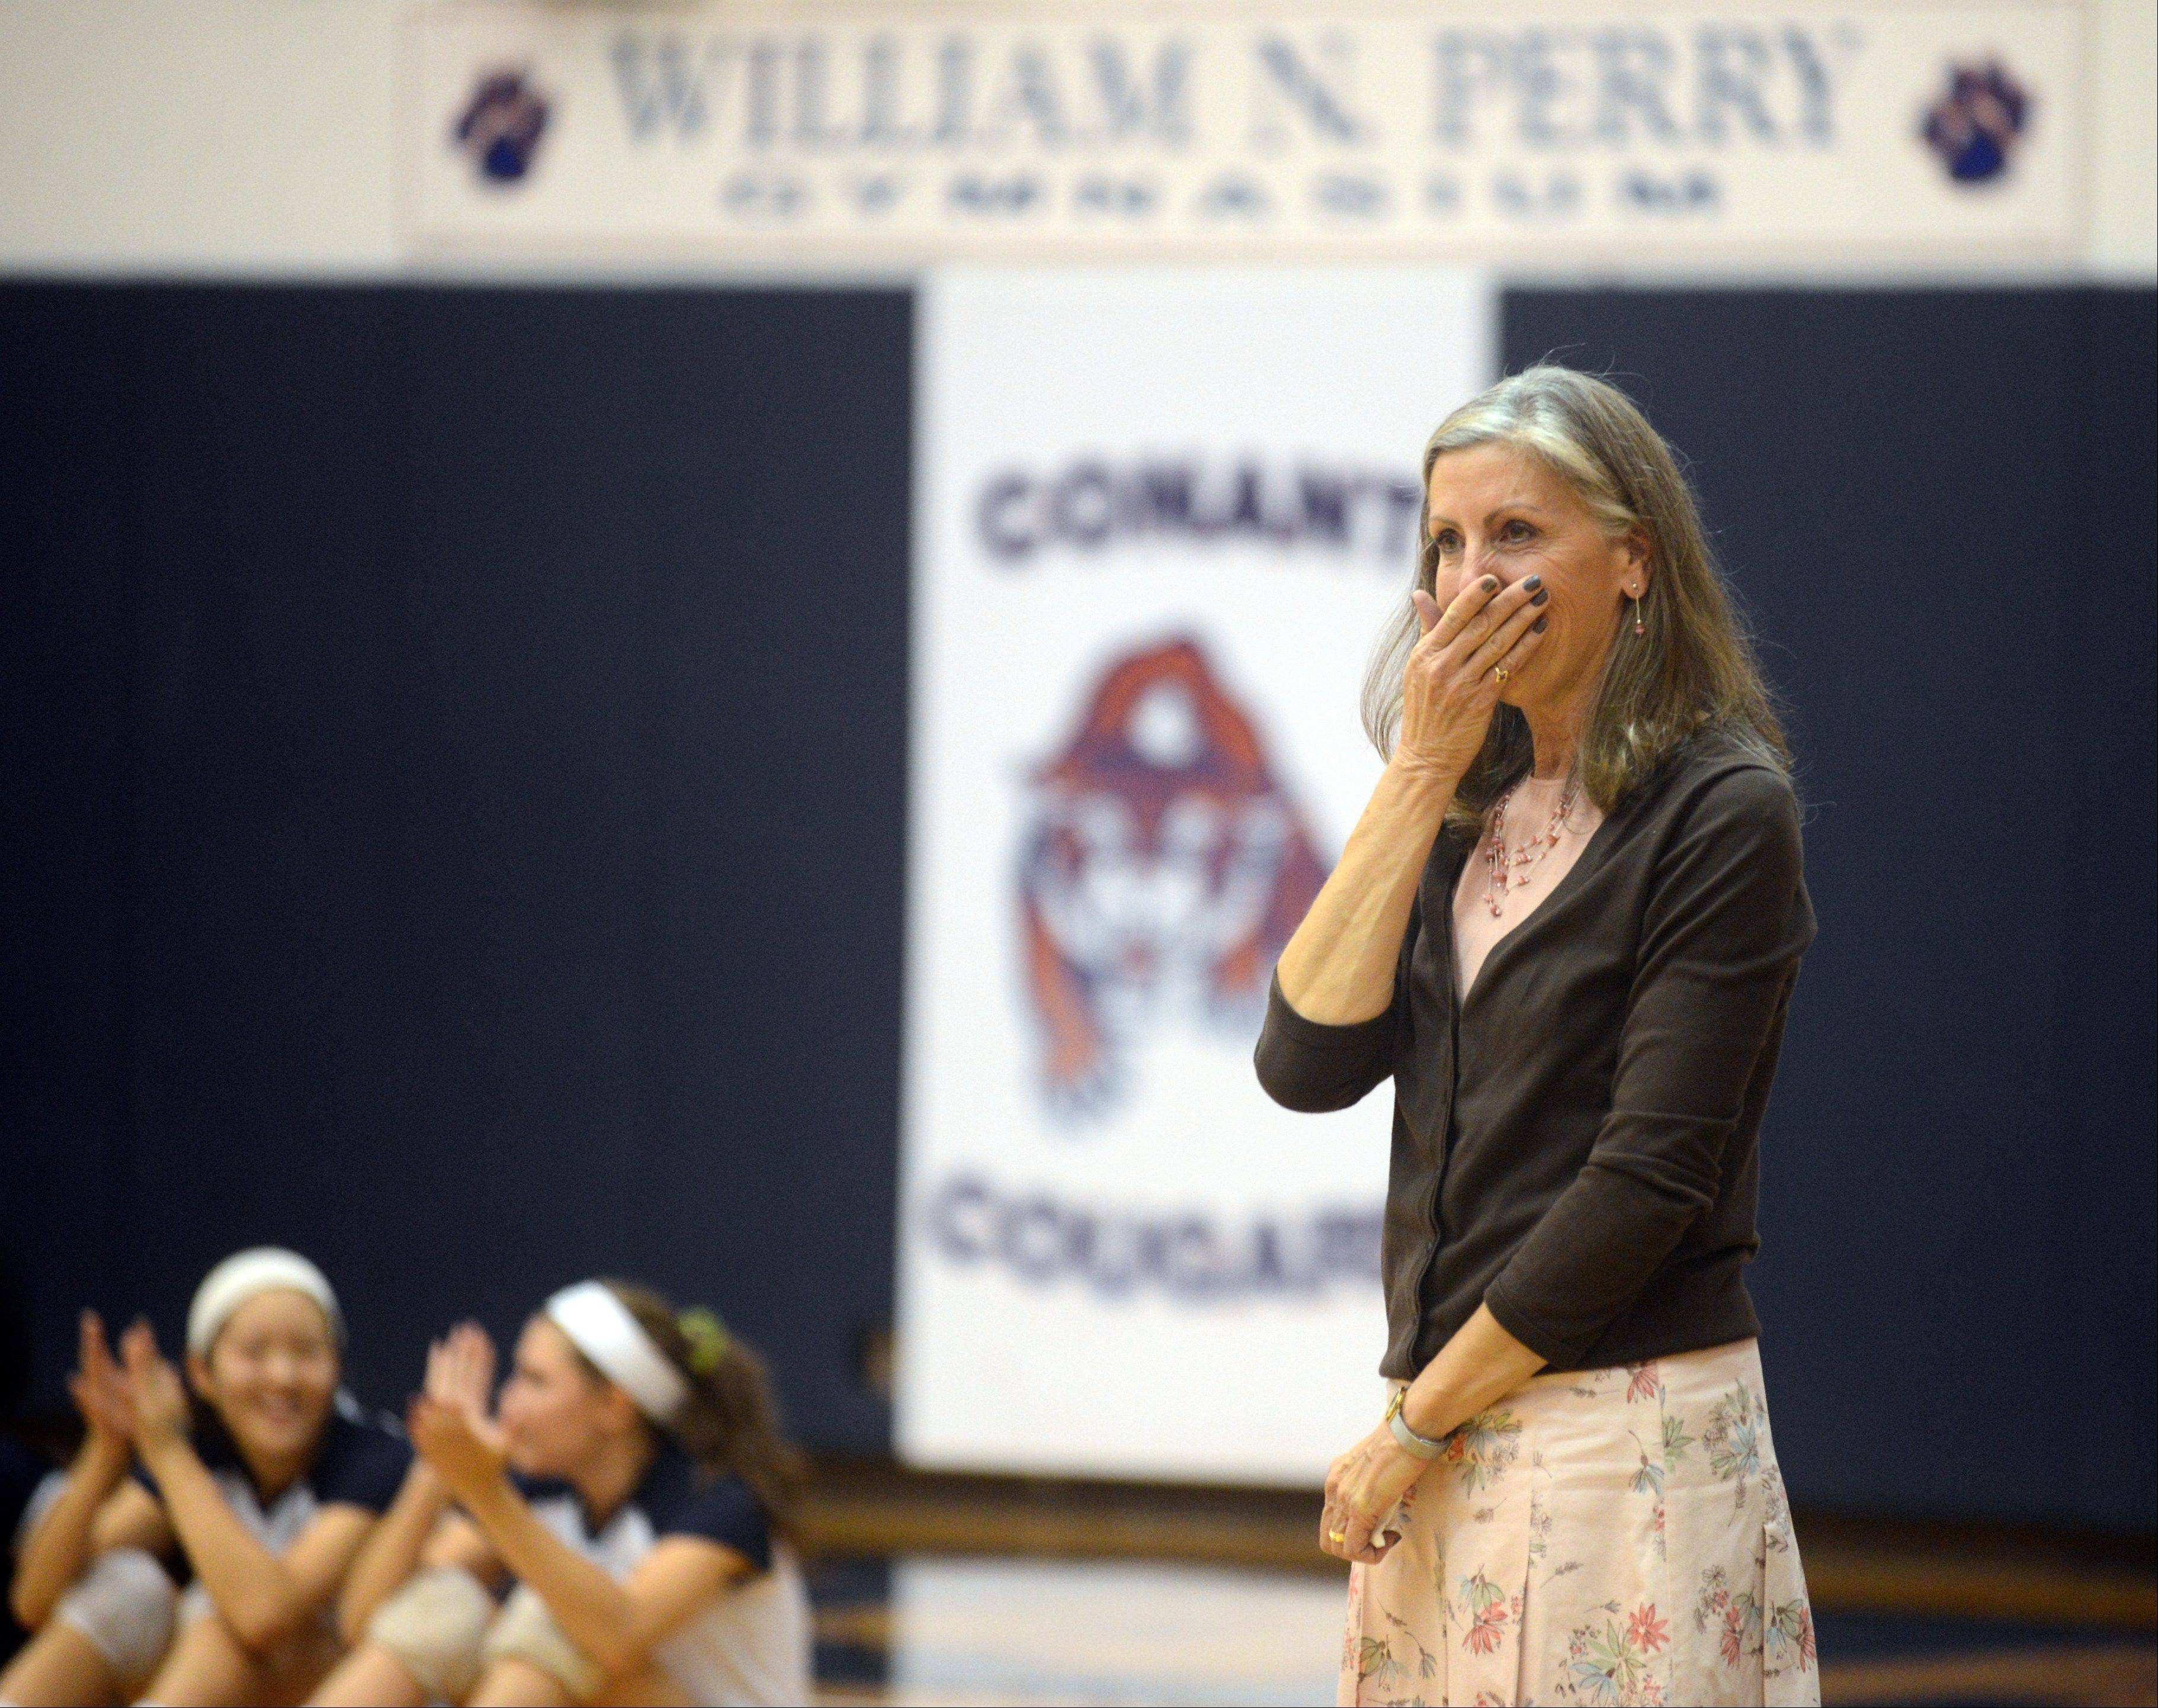 Conant volleyball coach Peggy Scholten is retiring after 37 years of coaching and was honored before a game against Schaumburg on Tuesday.